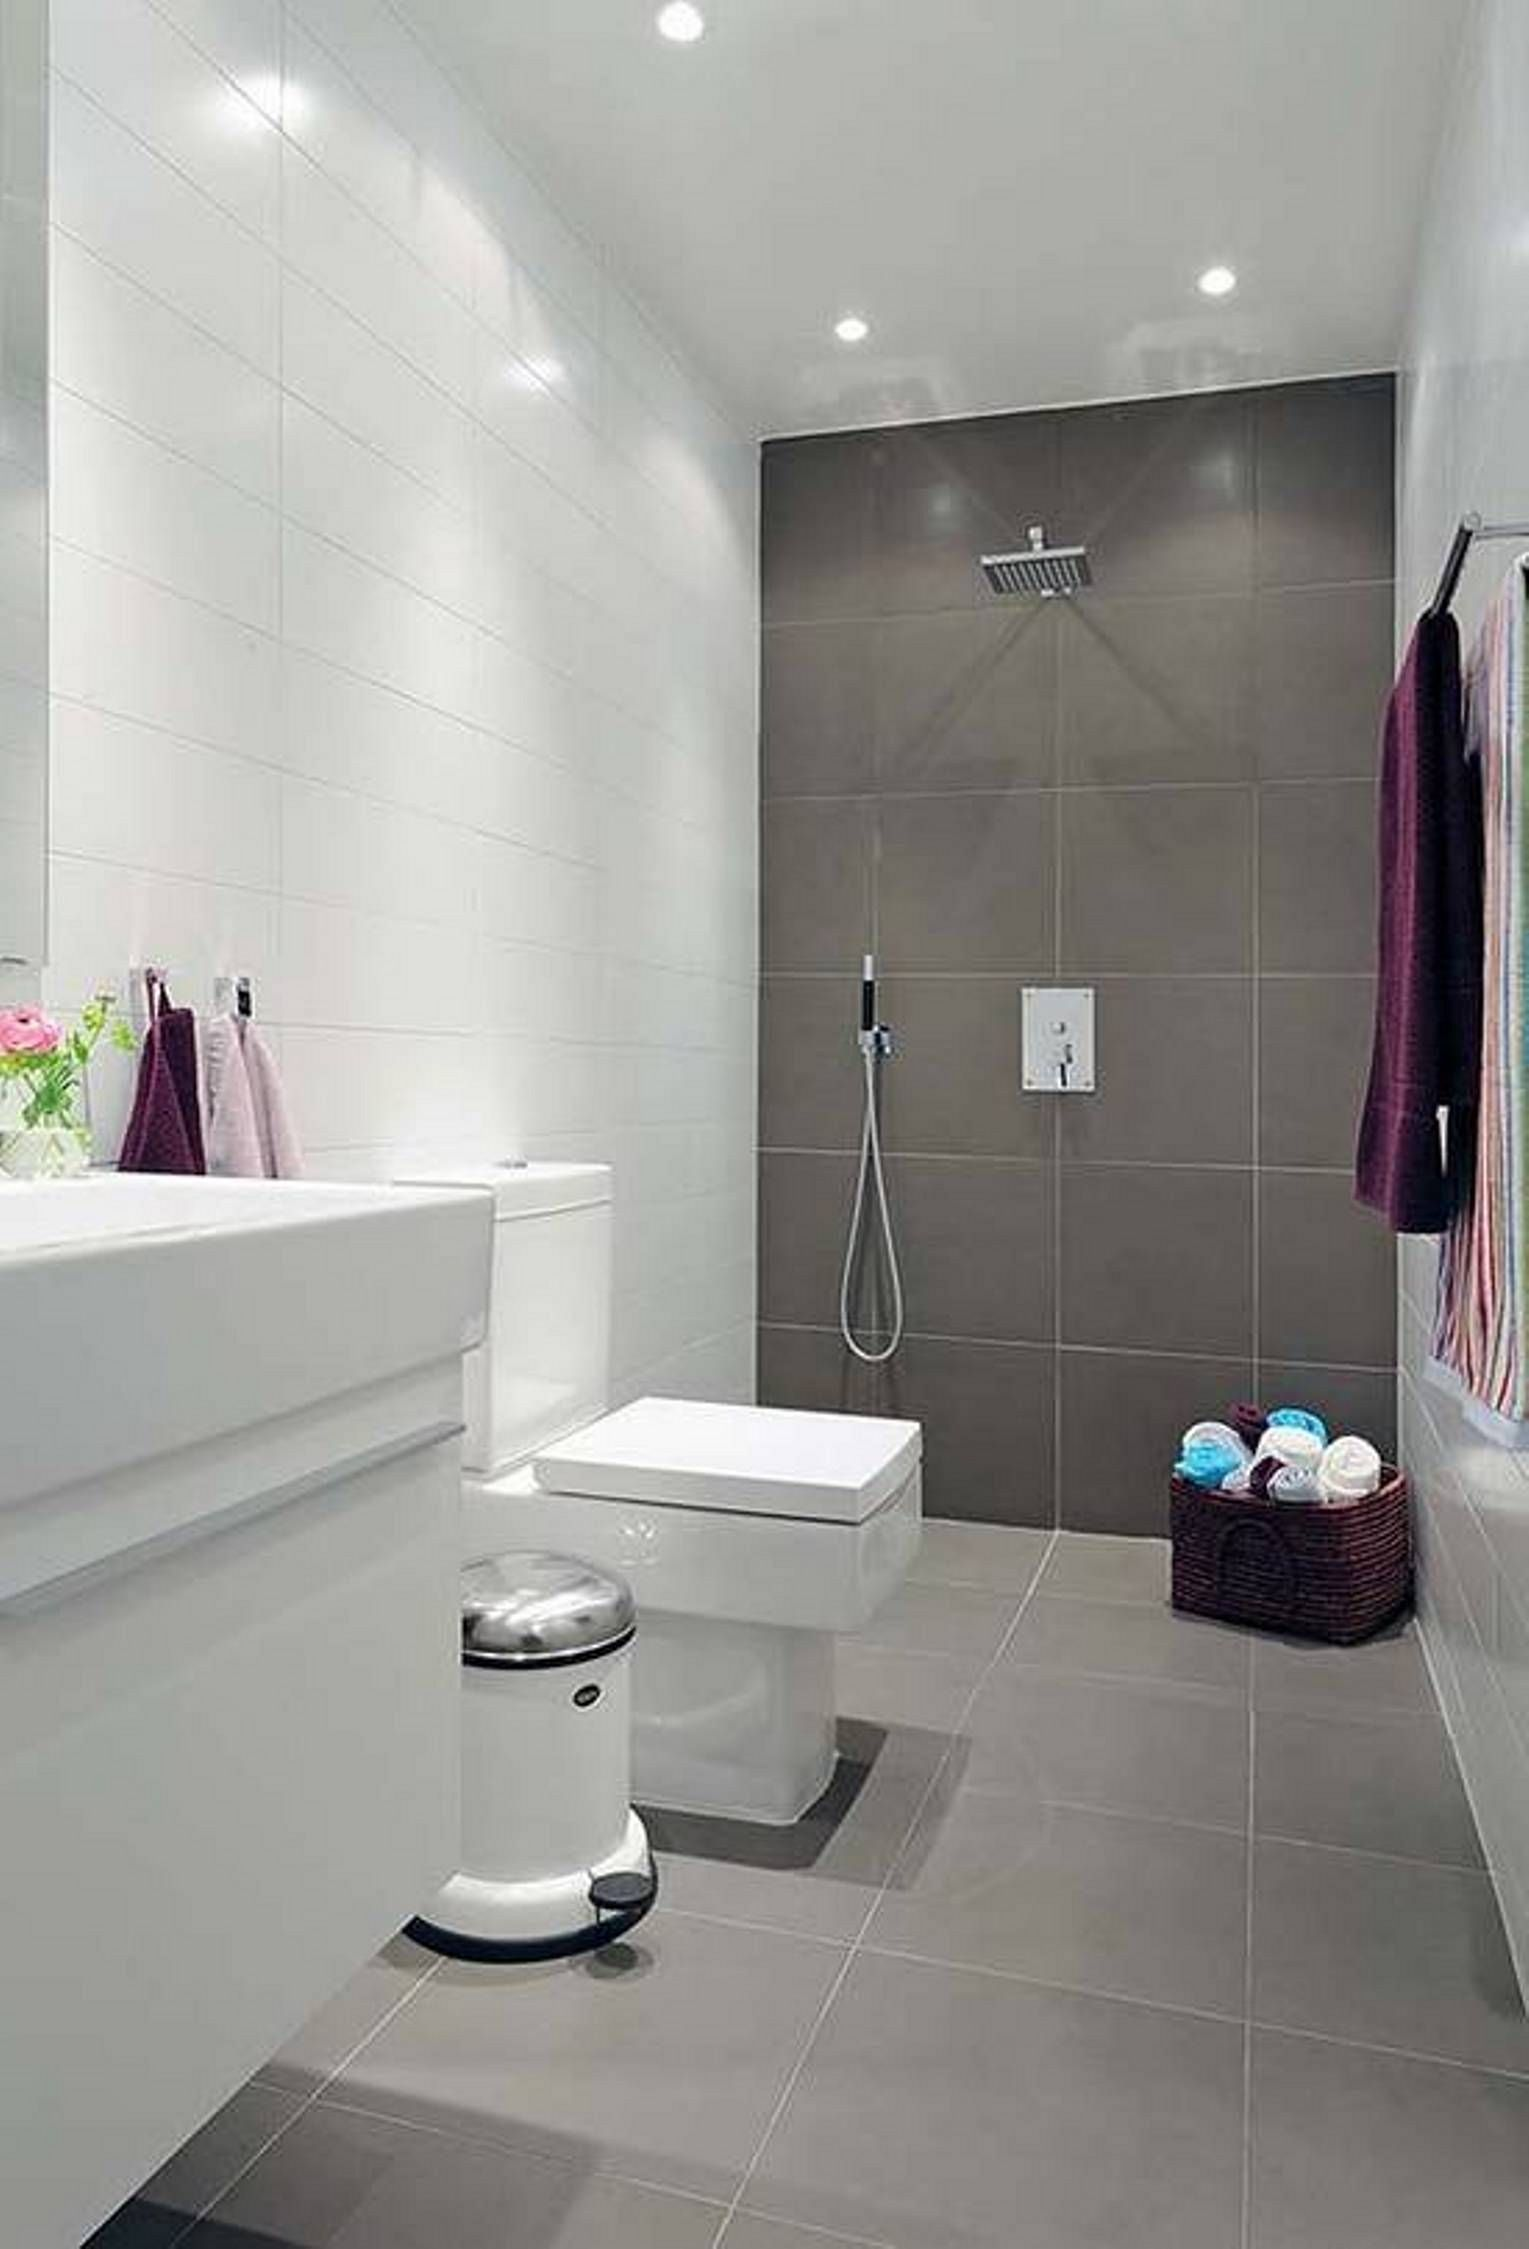 17 Wonderful Bathroom Design With Small Tile Ideas To Inspire You Bathroom Design Small Modern Modern Small Bathrooms Simple Bathroom